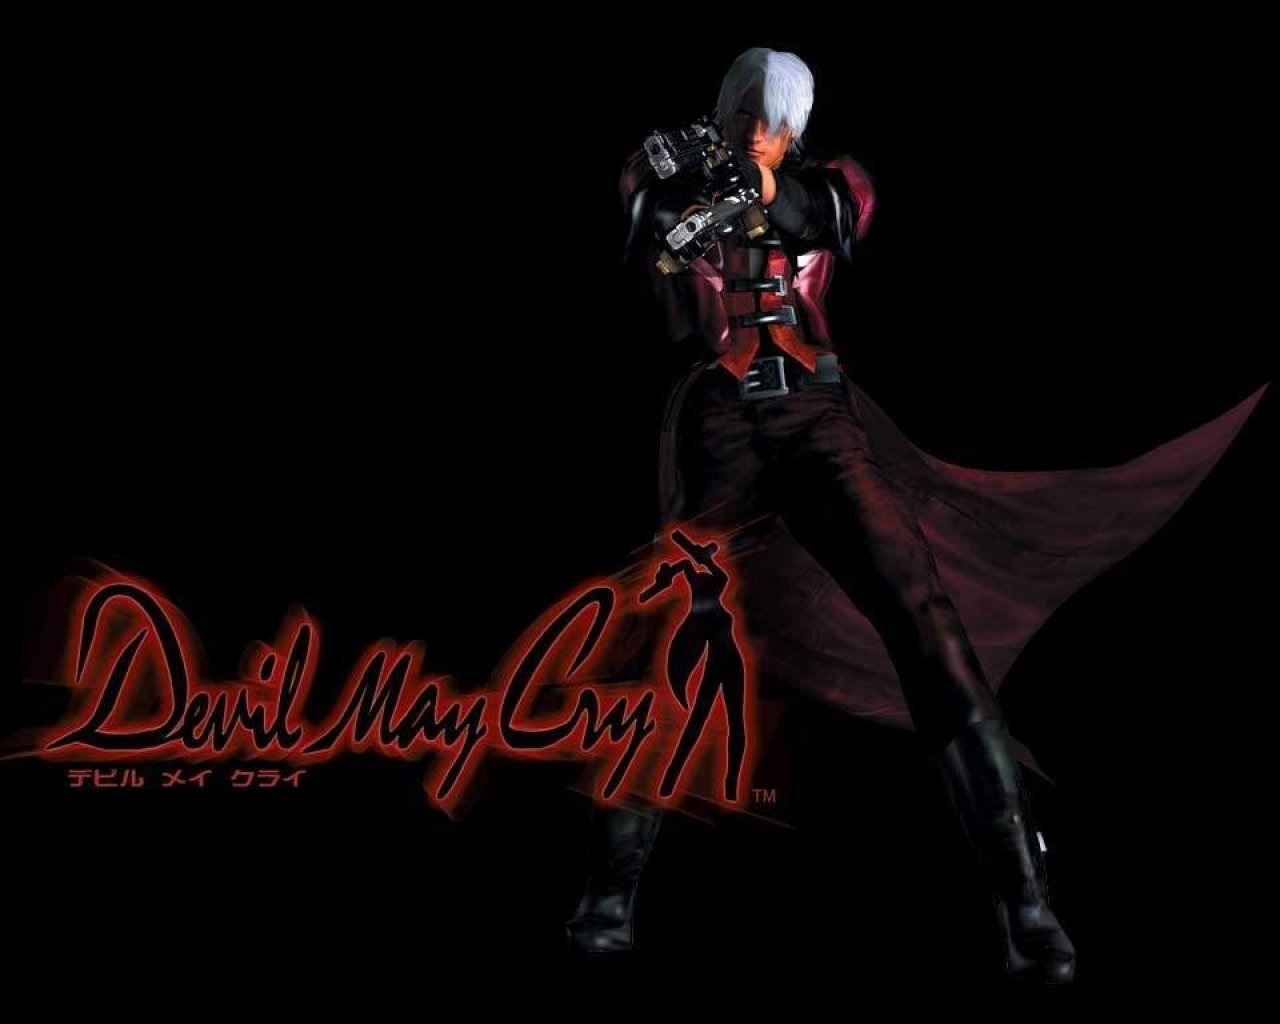 devil may cry 1 images devil may cry hd wallpaper and background